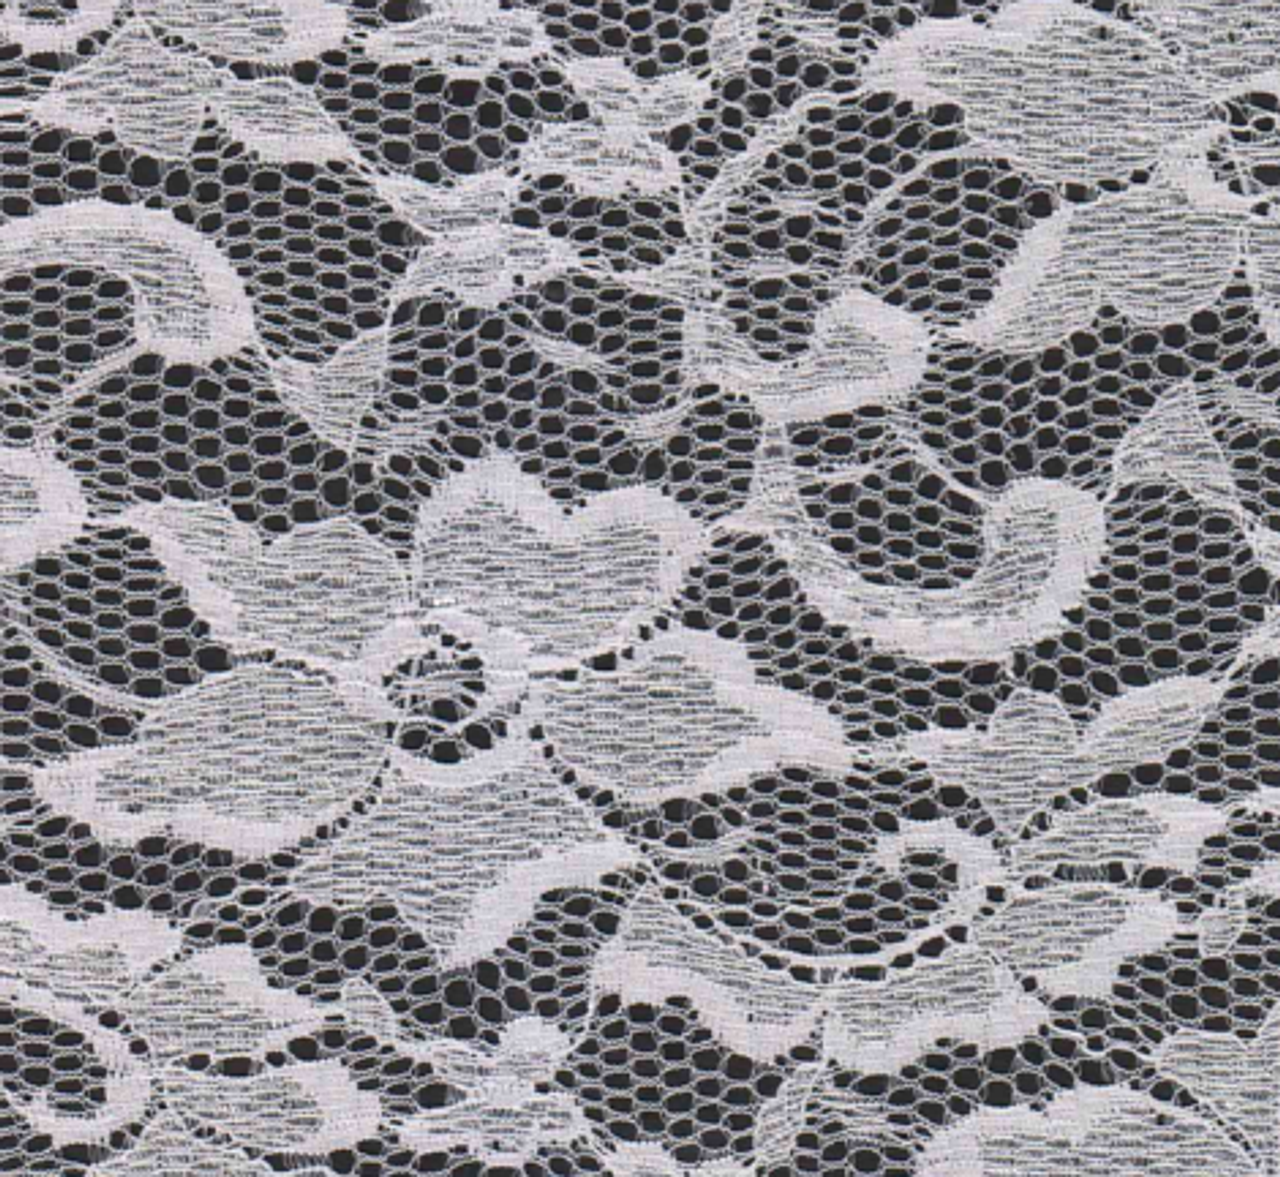 Floral Knits Lace Fabric Lace 60 White Fabrics By The Yard